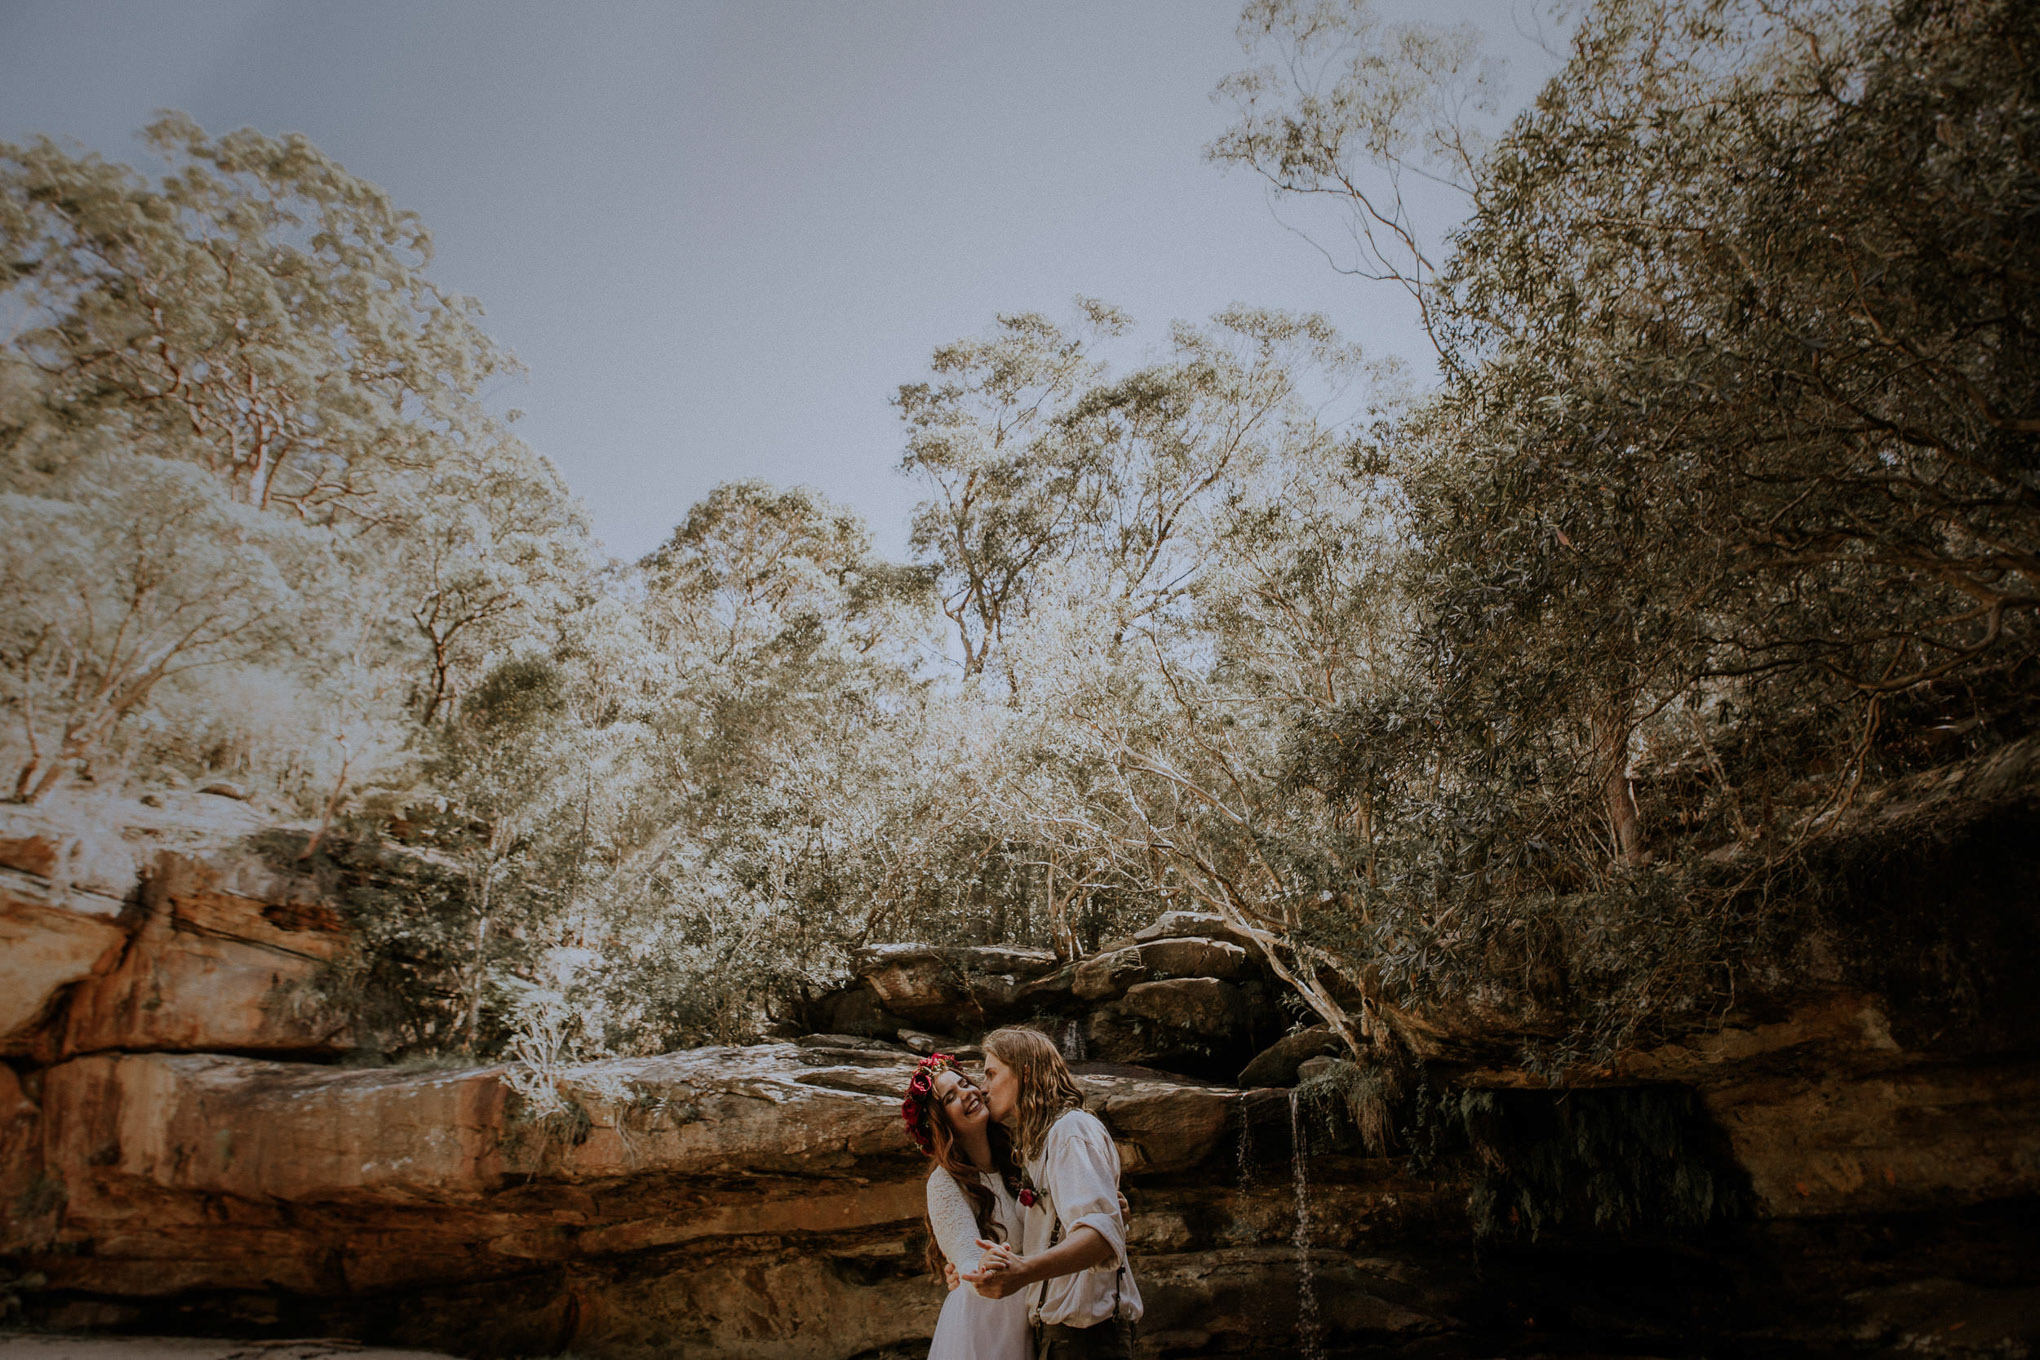 Categories: Weddings-Real Wedding: Beth & Caleb - Photography by Kings & Thieves